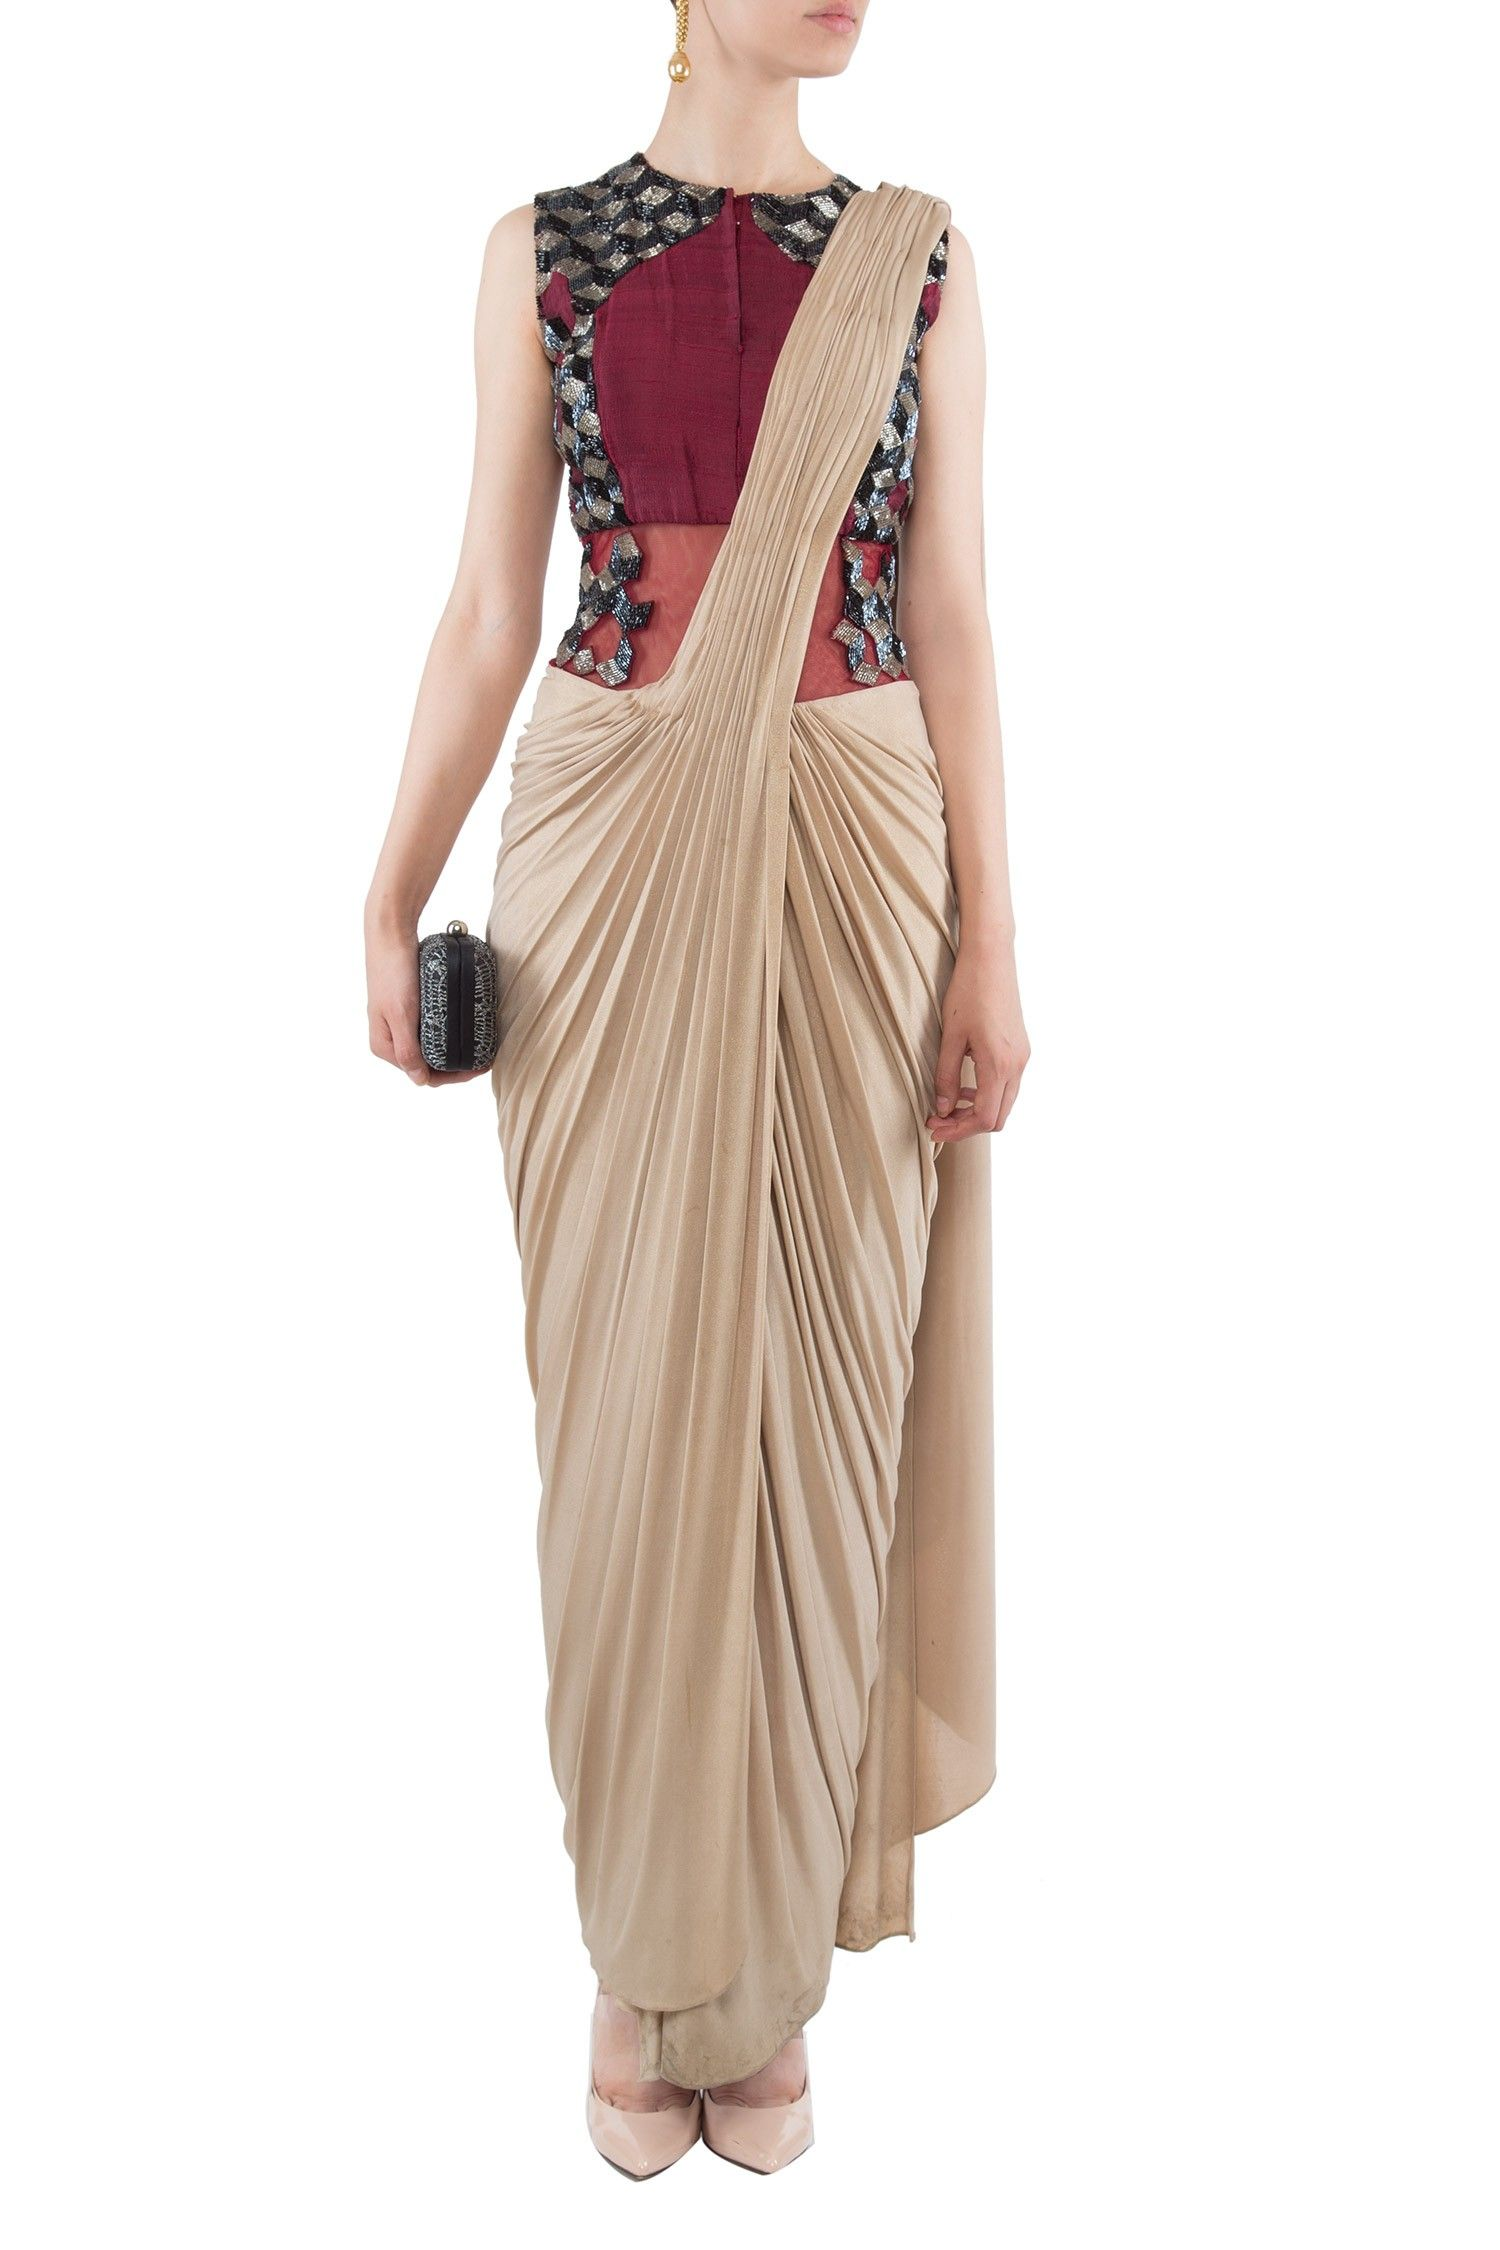 Draped saree gown by 1600 A.D. Shop now: http://www.onceuponatrunk ...